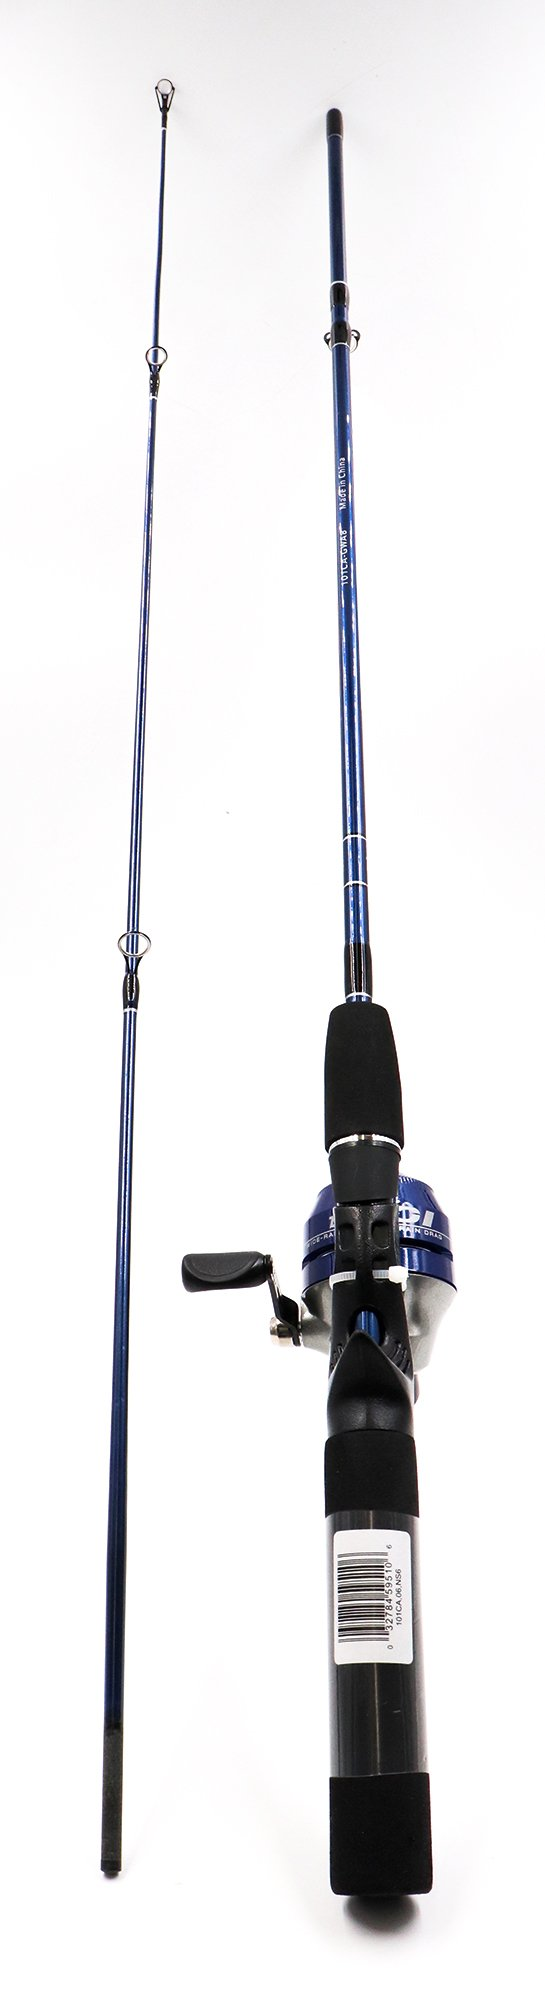 21-10024 Zebco Spincast Rod & Reel Combo (Wholesale orders-sold in multiples of 6 pcs only)